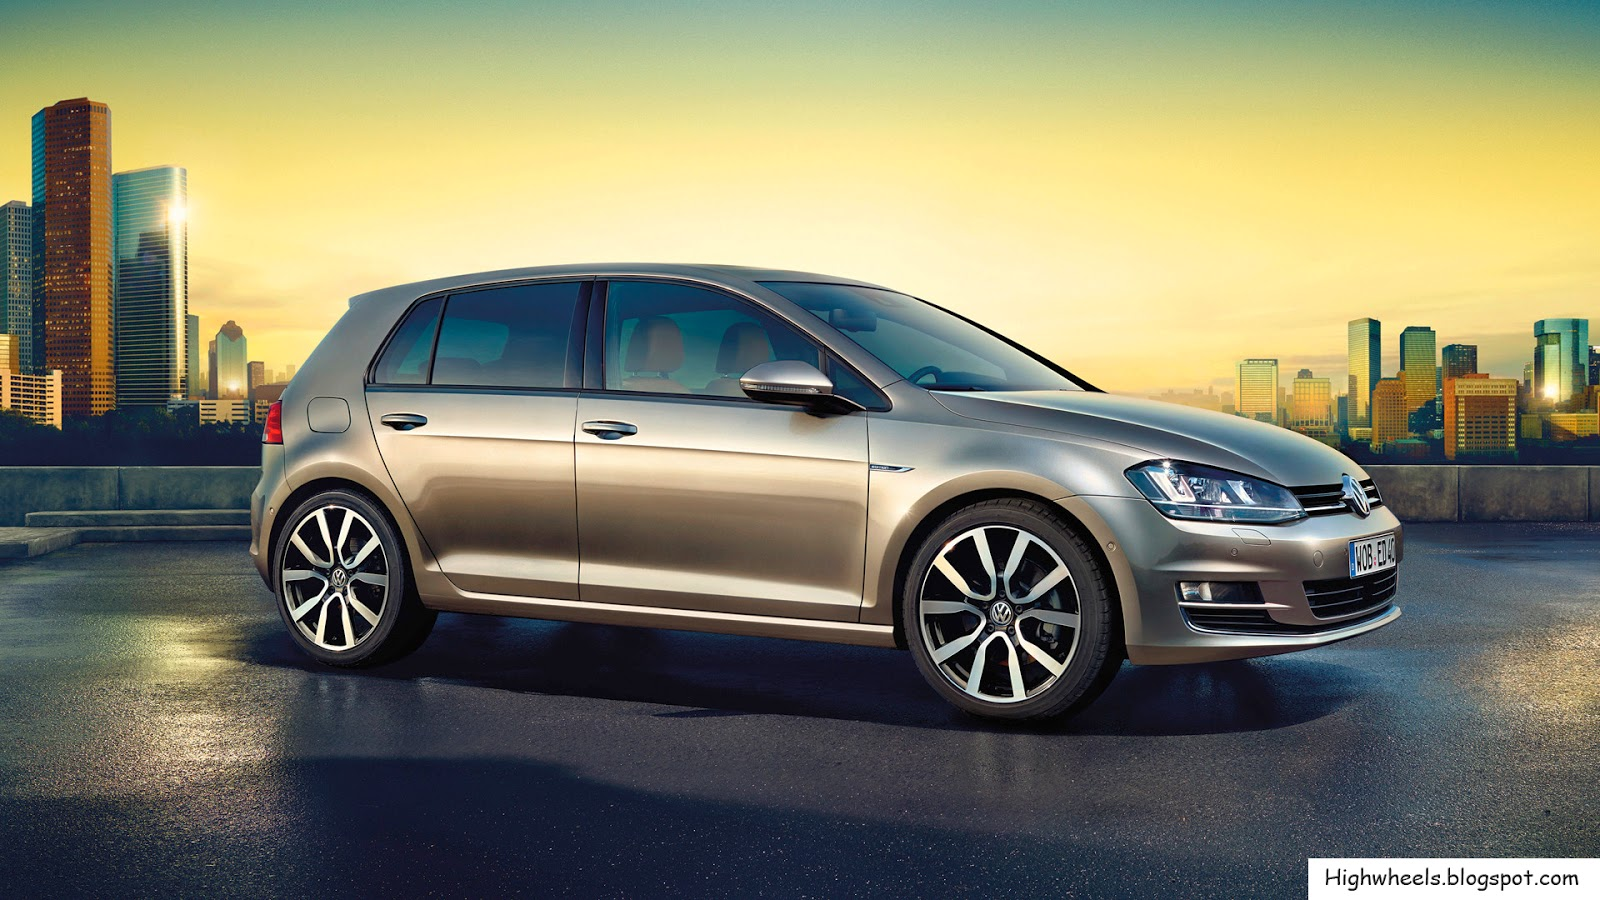 2015 volkswagen golf edition high wheels. Black Bedroom Furniture Sets. Home Design Ideas